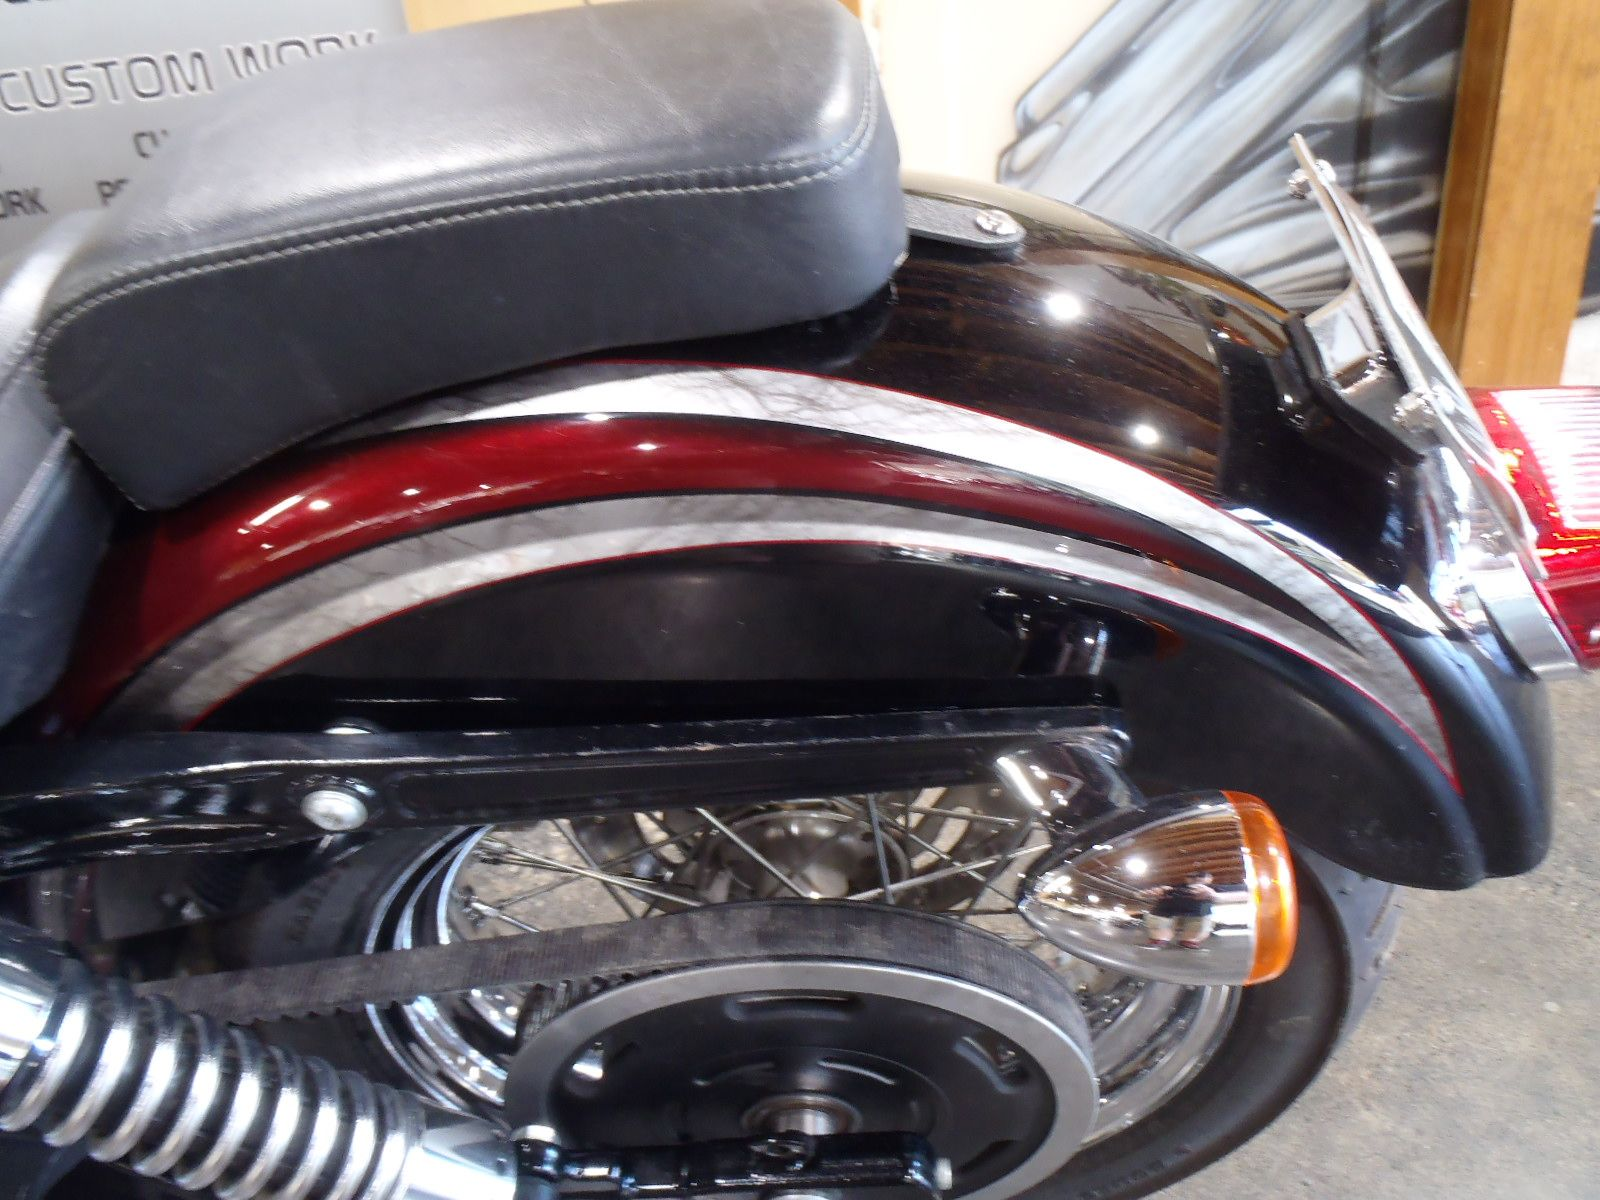 2009 Harley-Davidson Dyna Super Glide Custom in South Saint Paul, Minnesota - Photo 21